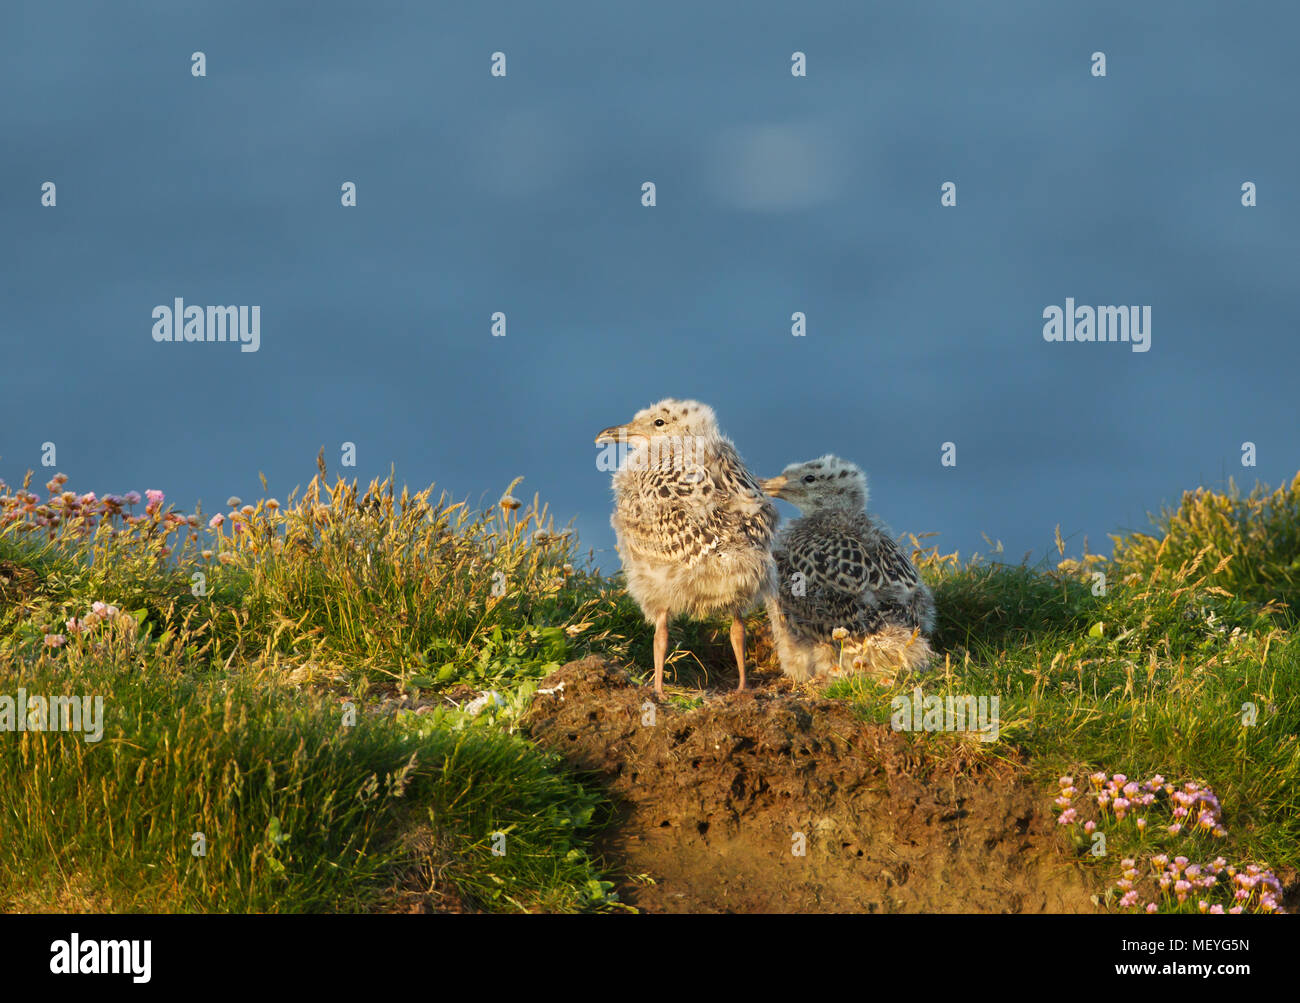 Two European herring gull chicks standing by the nest in grass on a sunny summer day, Scotland, UK. Stock Photo